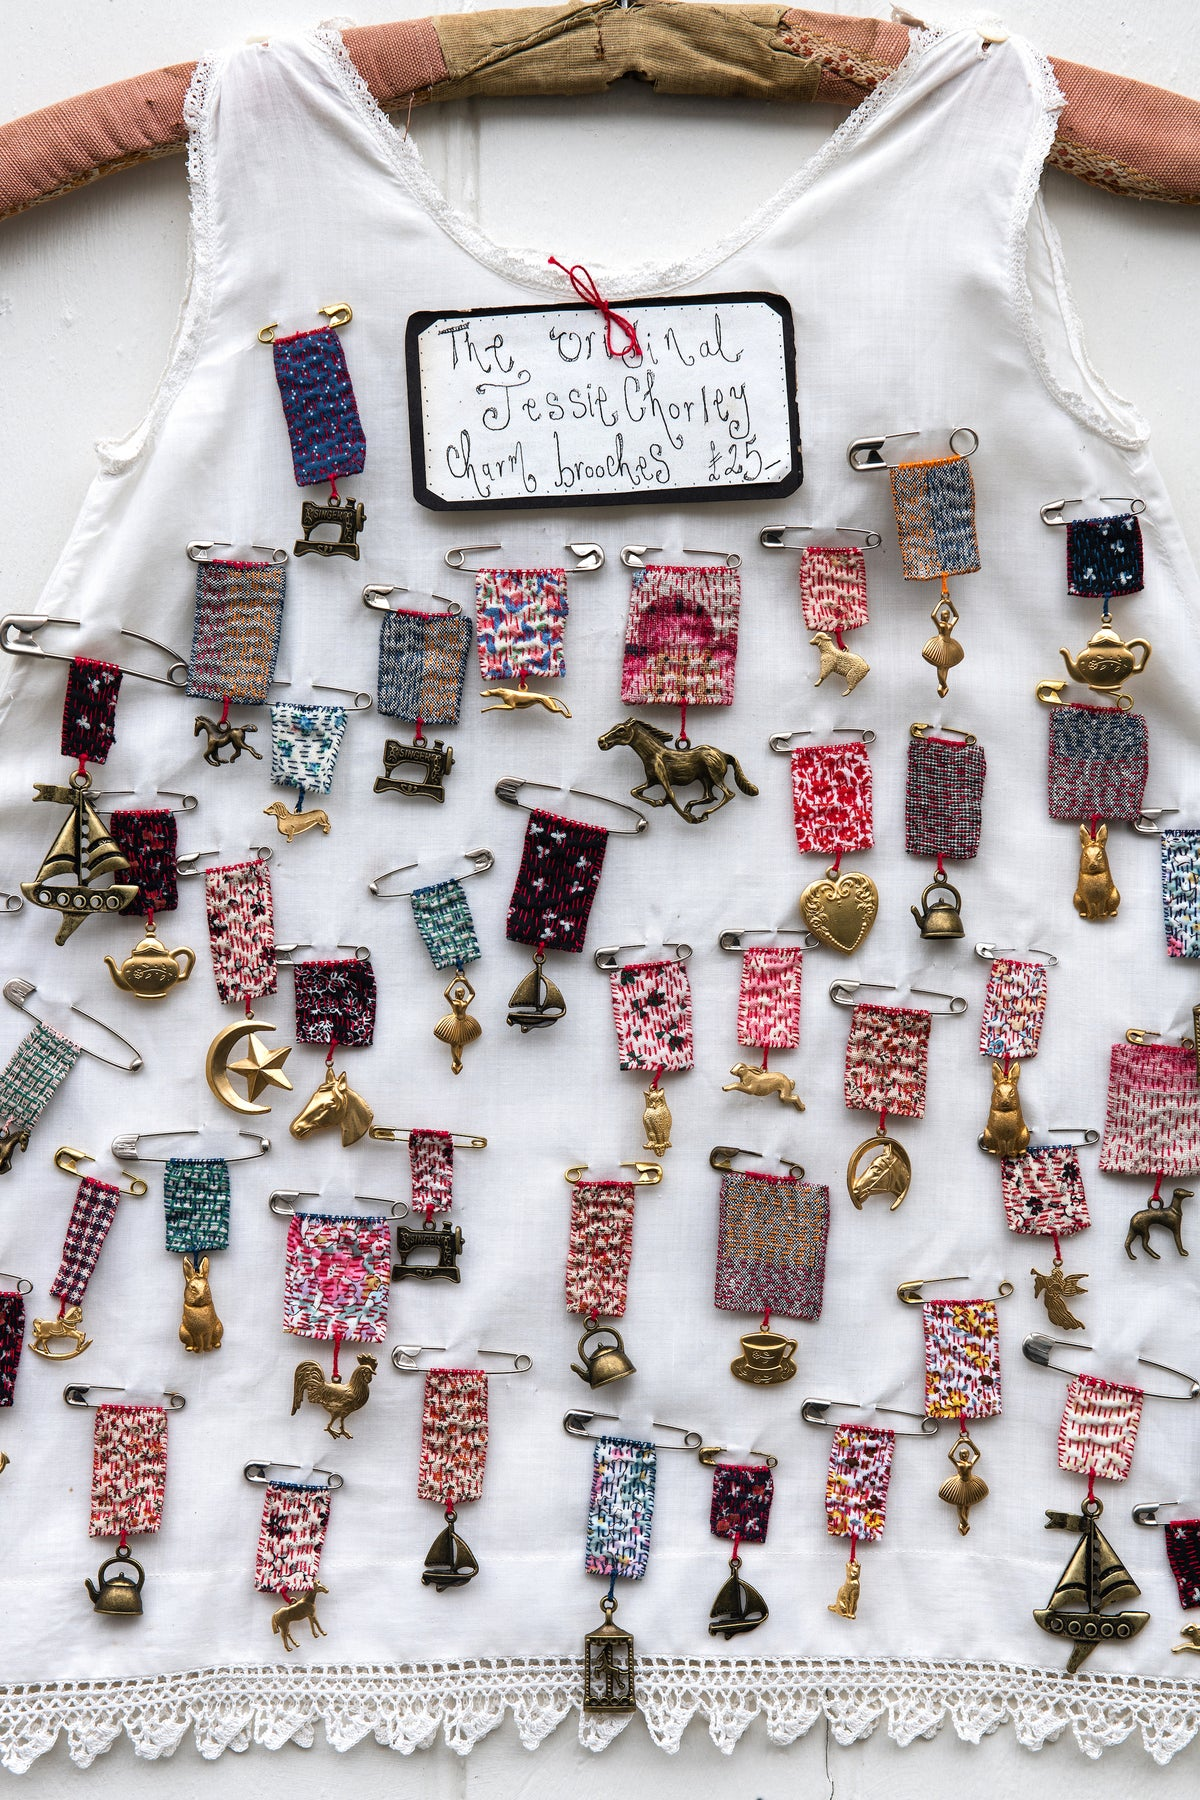 Image of The original Jessie Chorley Charm brooches